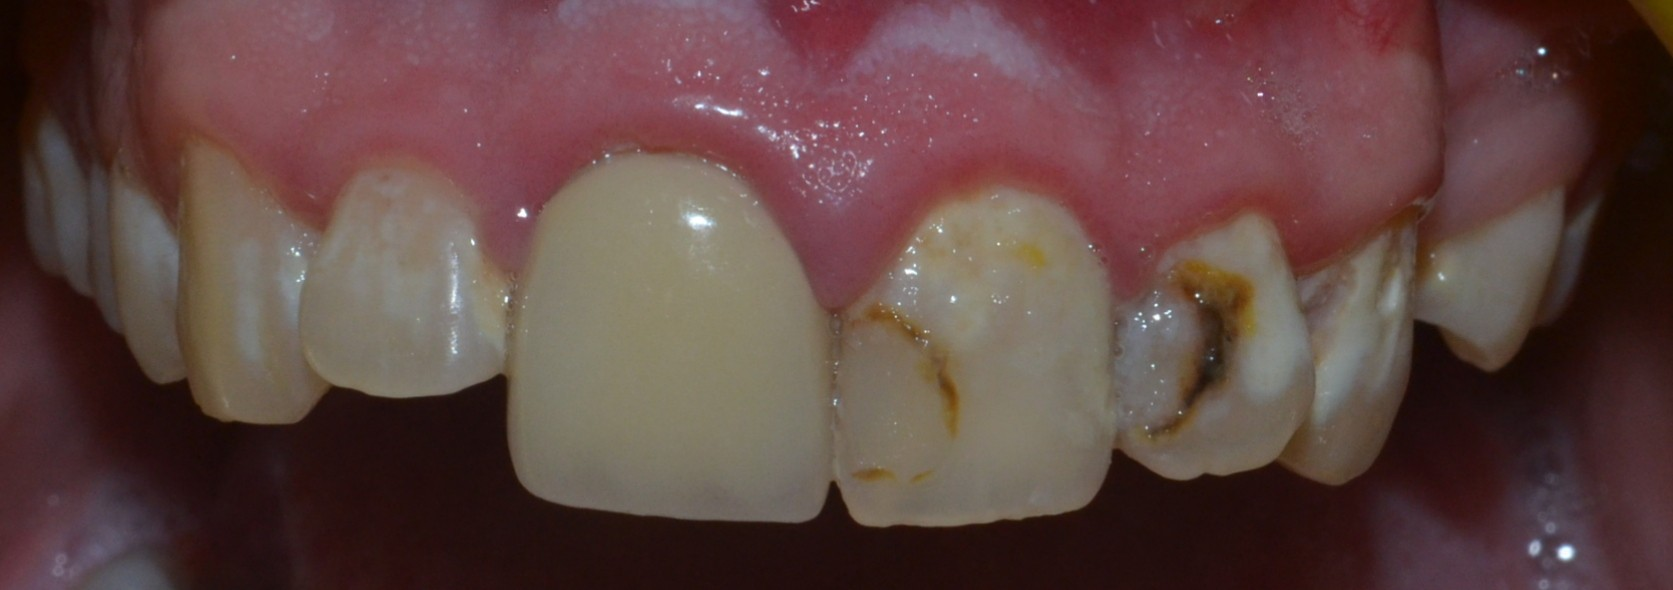 decayed discoloured teeth